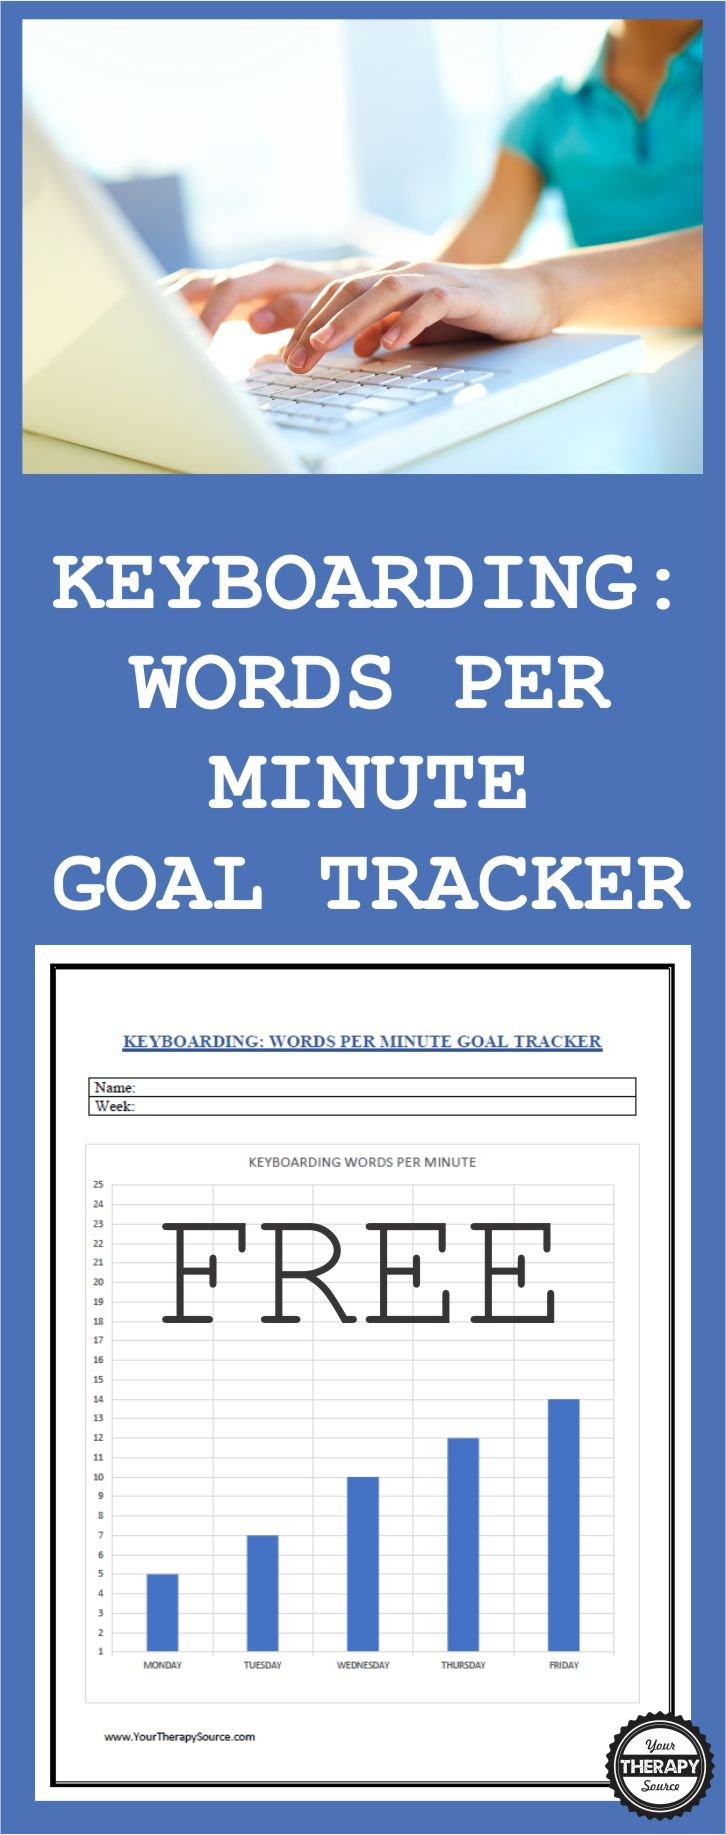 Keyboarding Words Per Minute Goal Tracker - Your Therapy Source